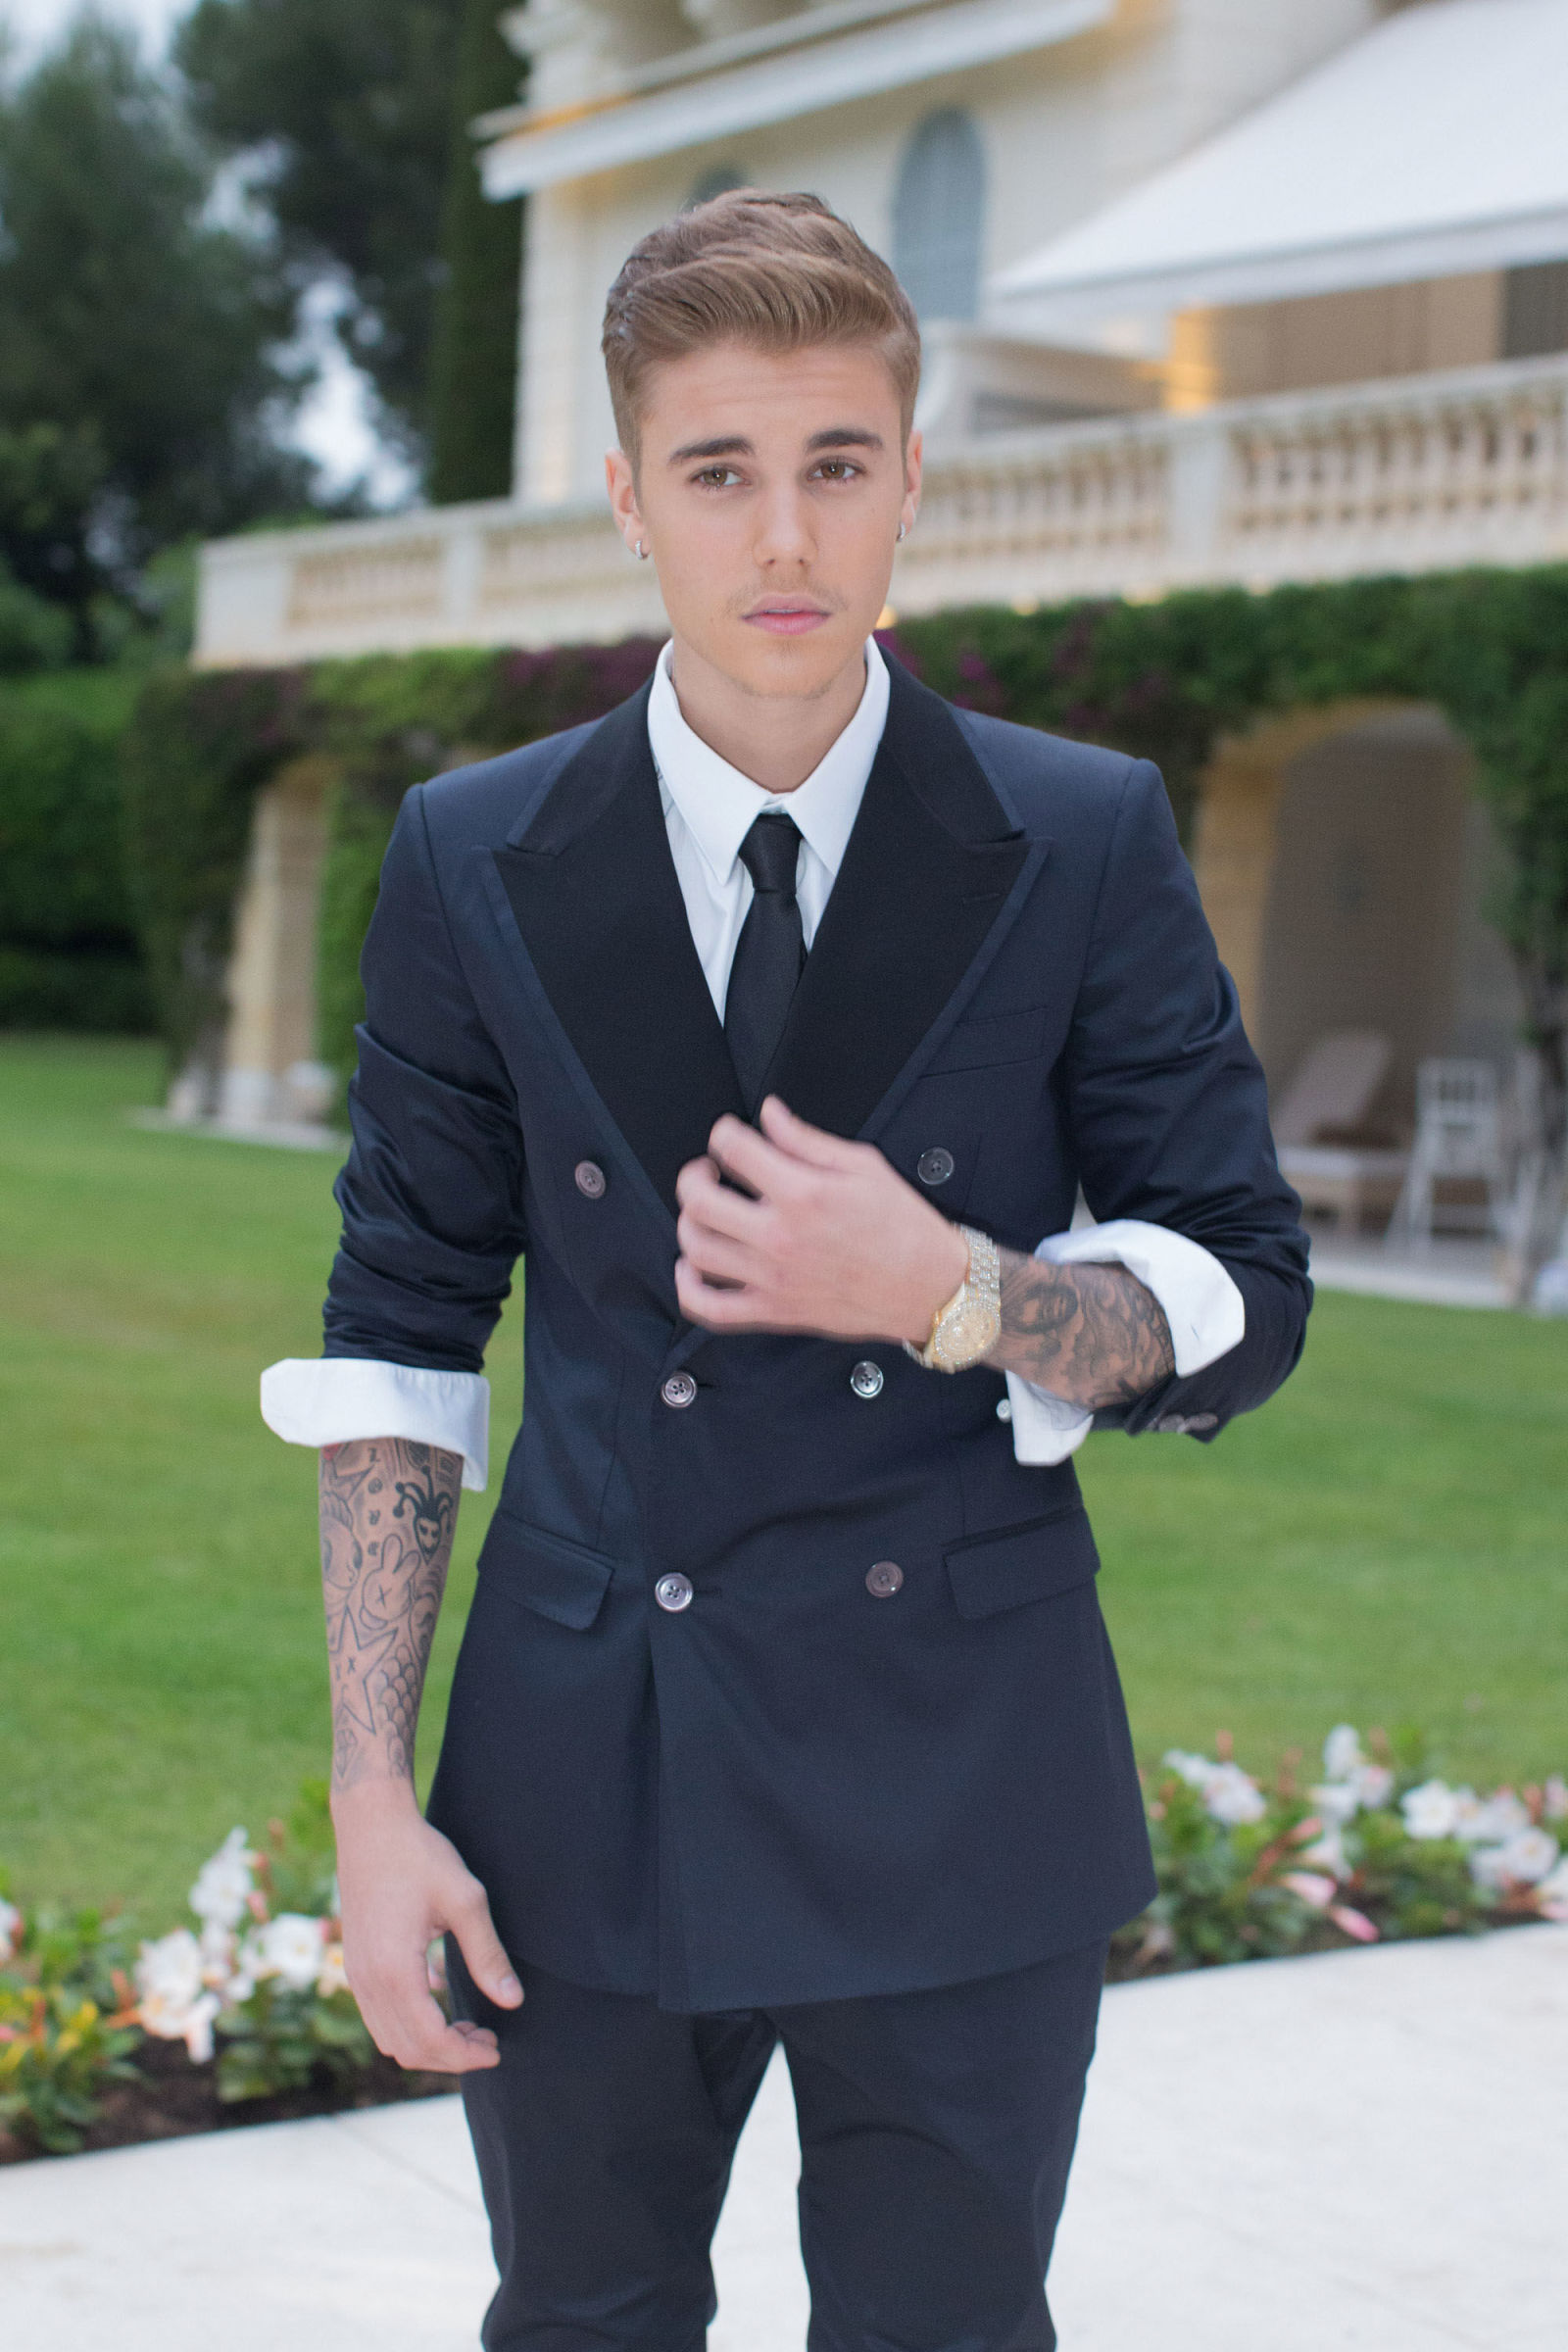 the gallery for gt justin bieber in a suit 2014 instagram